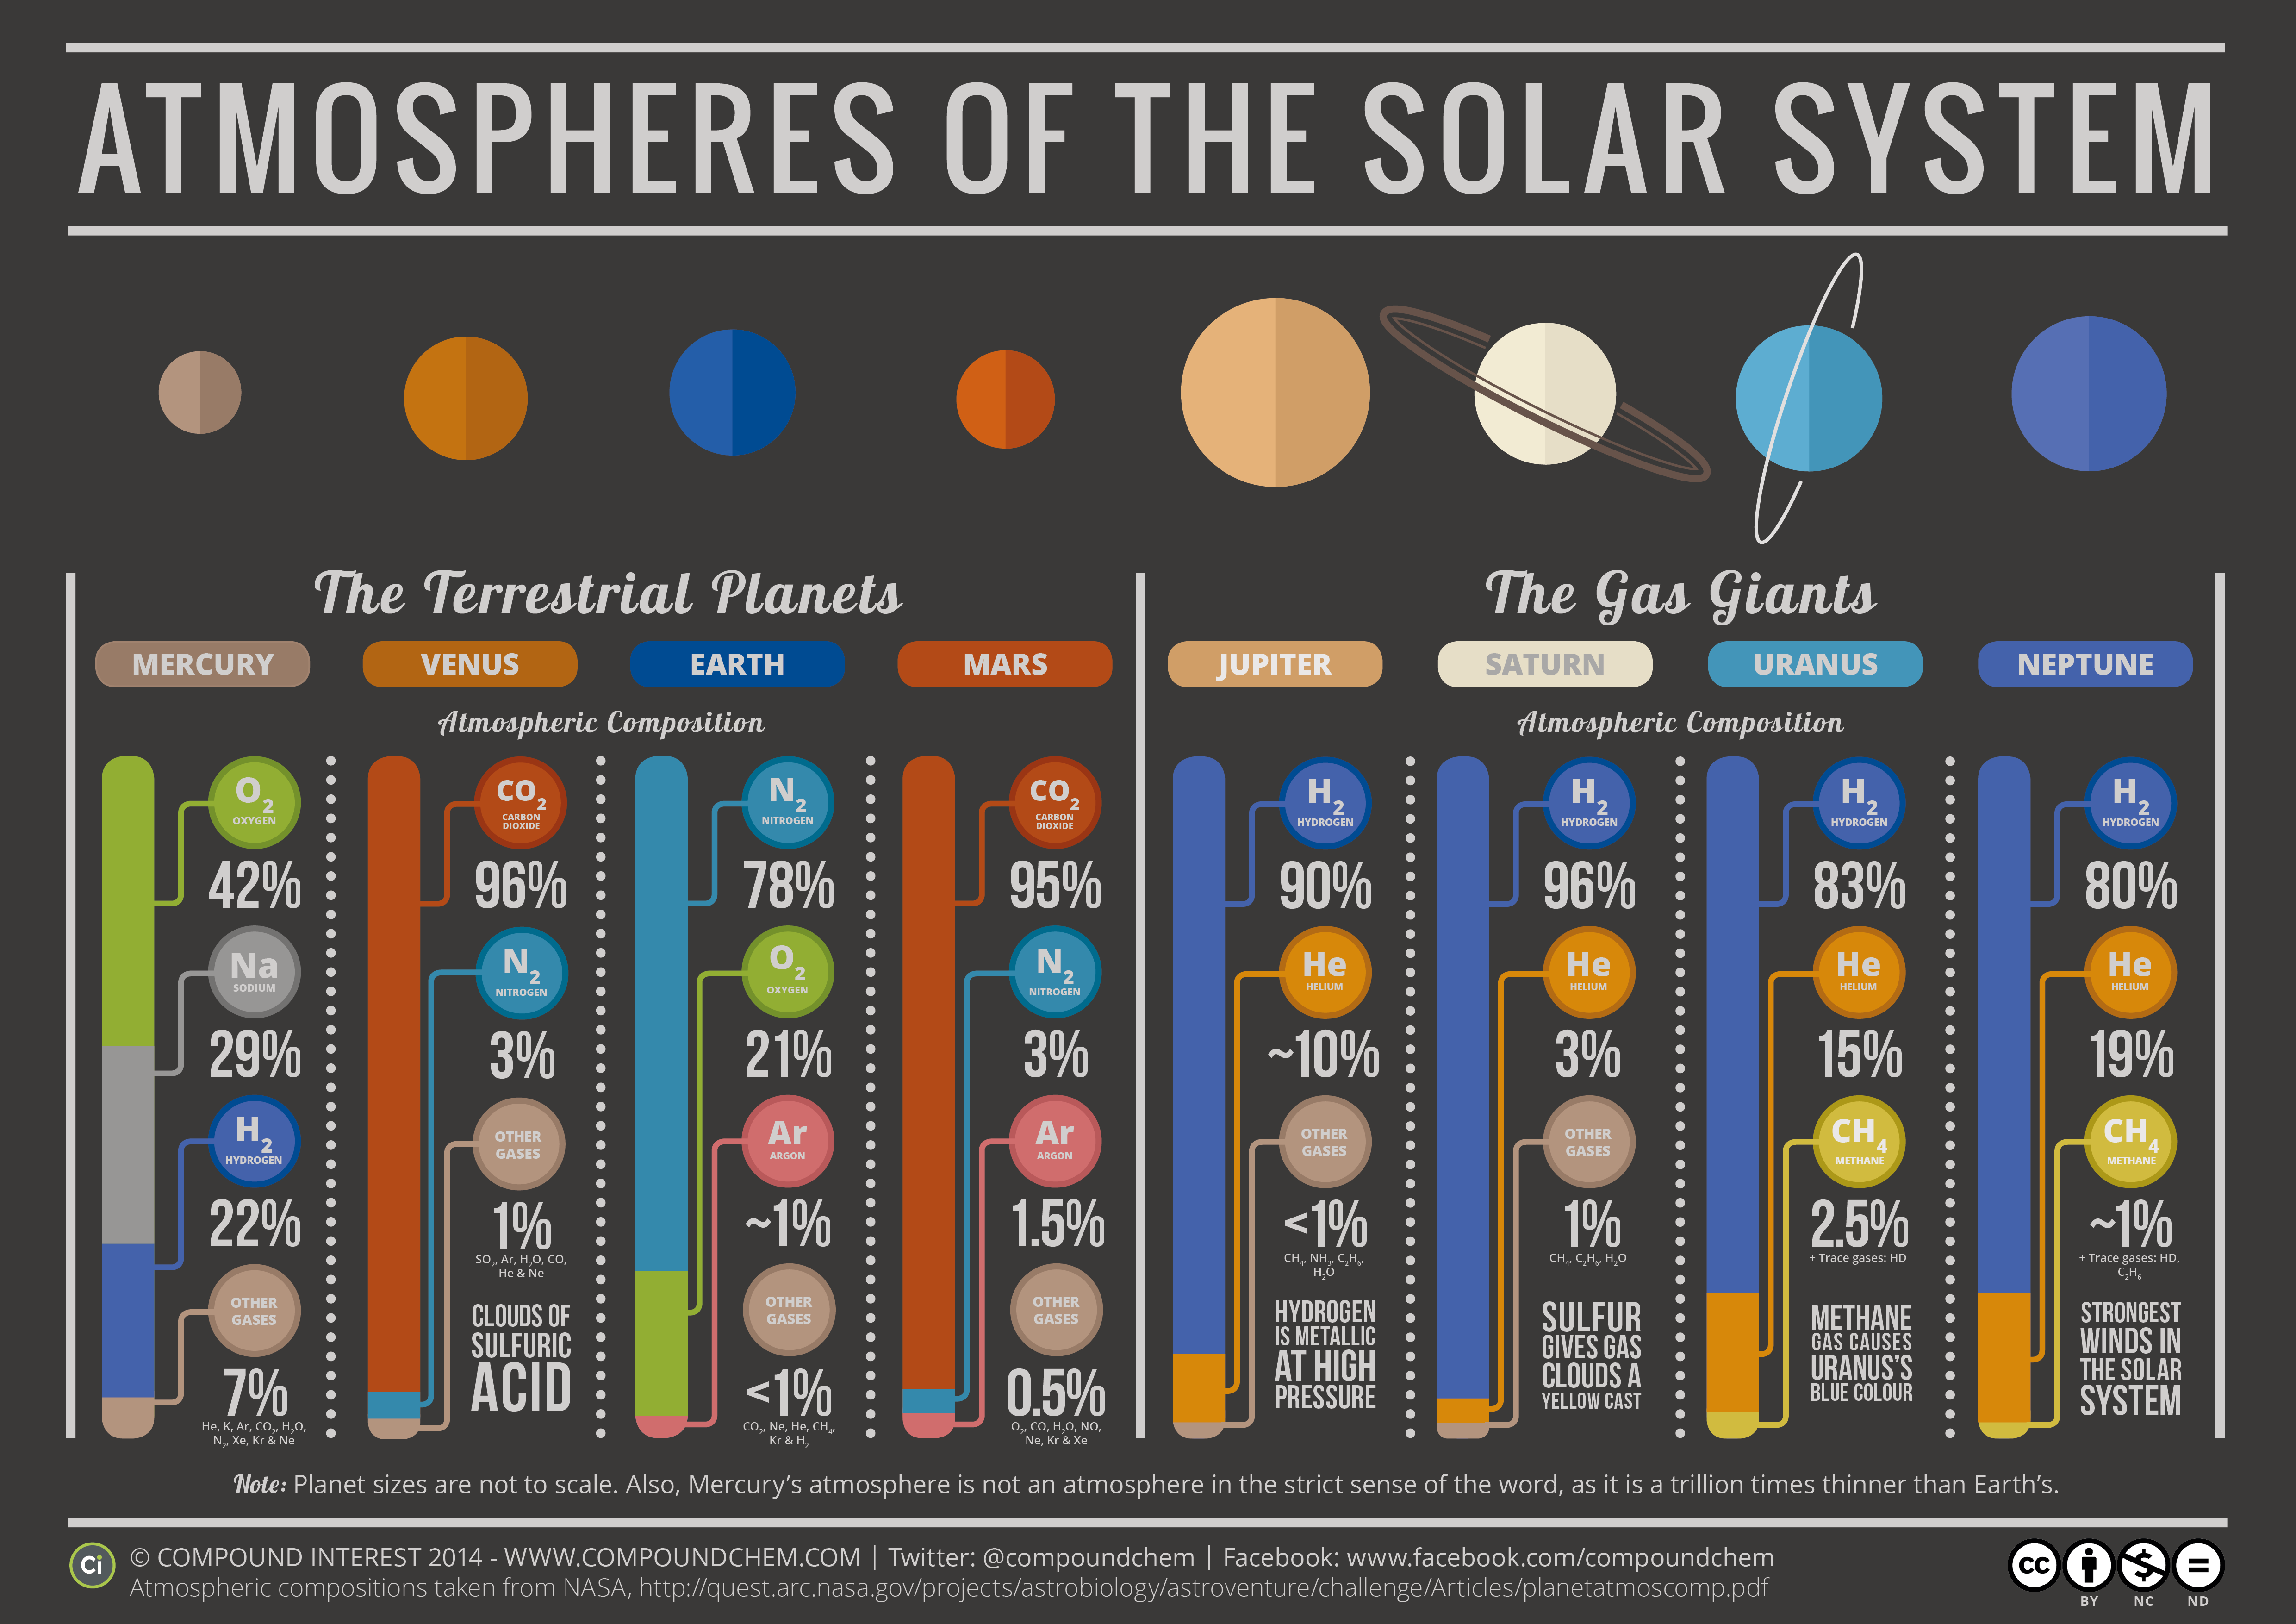 The atmospheres of the Solar System | The Planetary Society